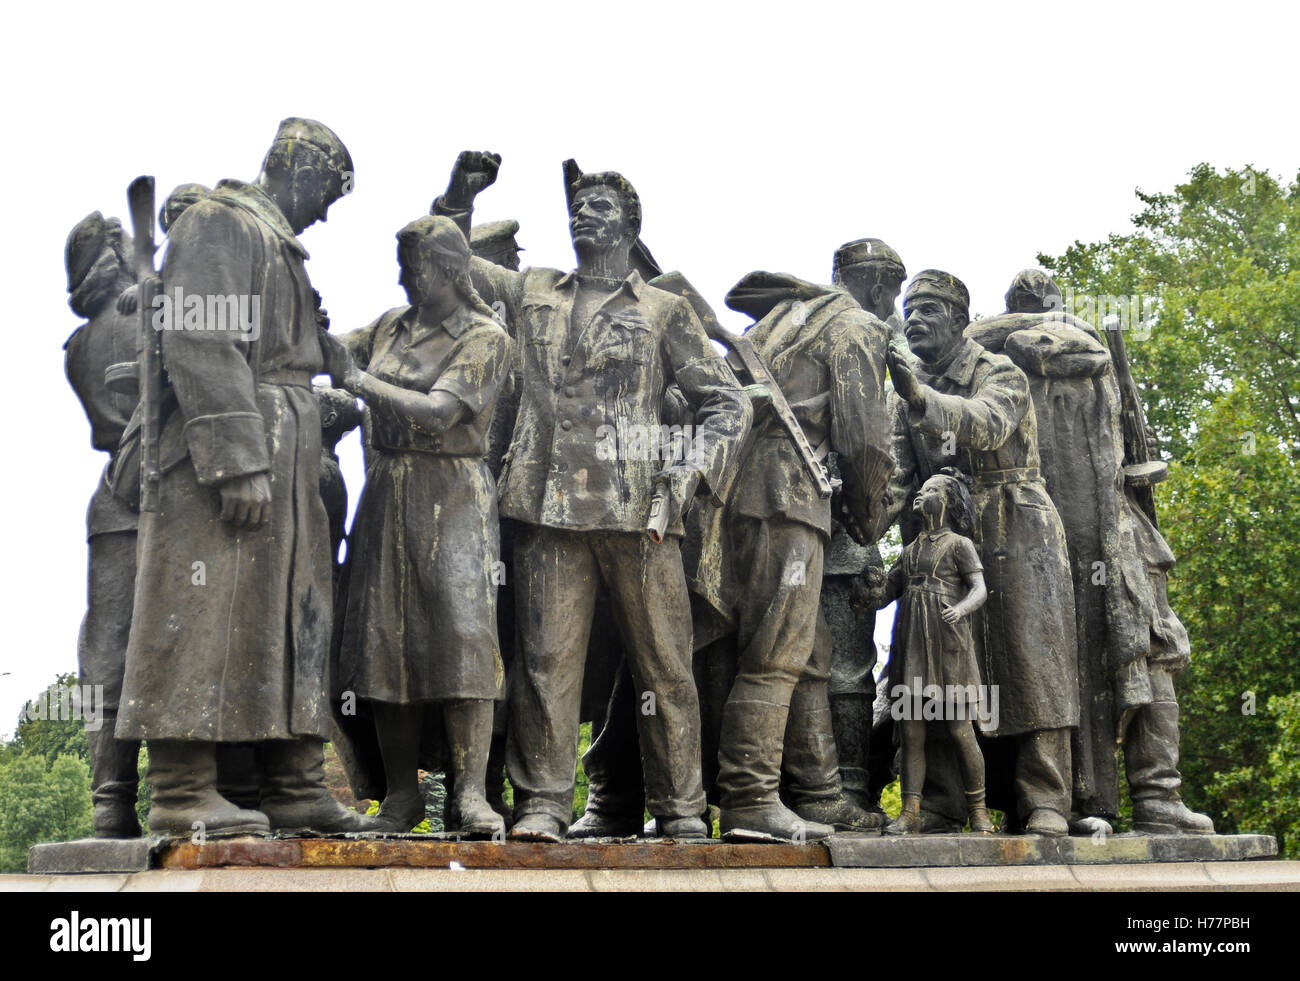 Monument to the Soviet Army. Sofia, Bulgaria. Secondary sculptural composition. Stock Photo